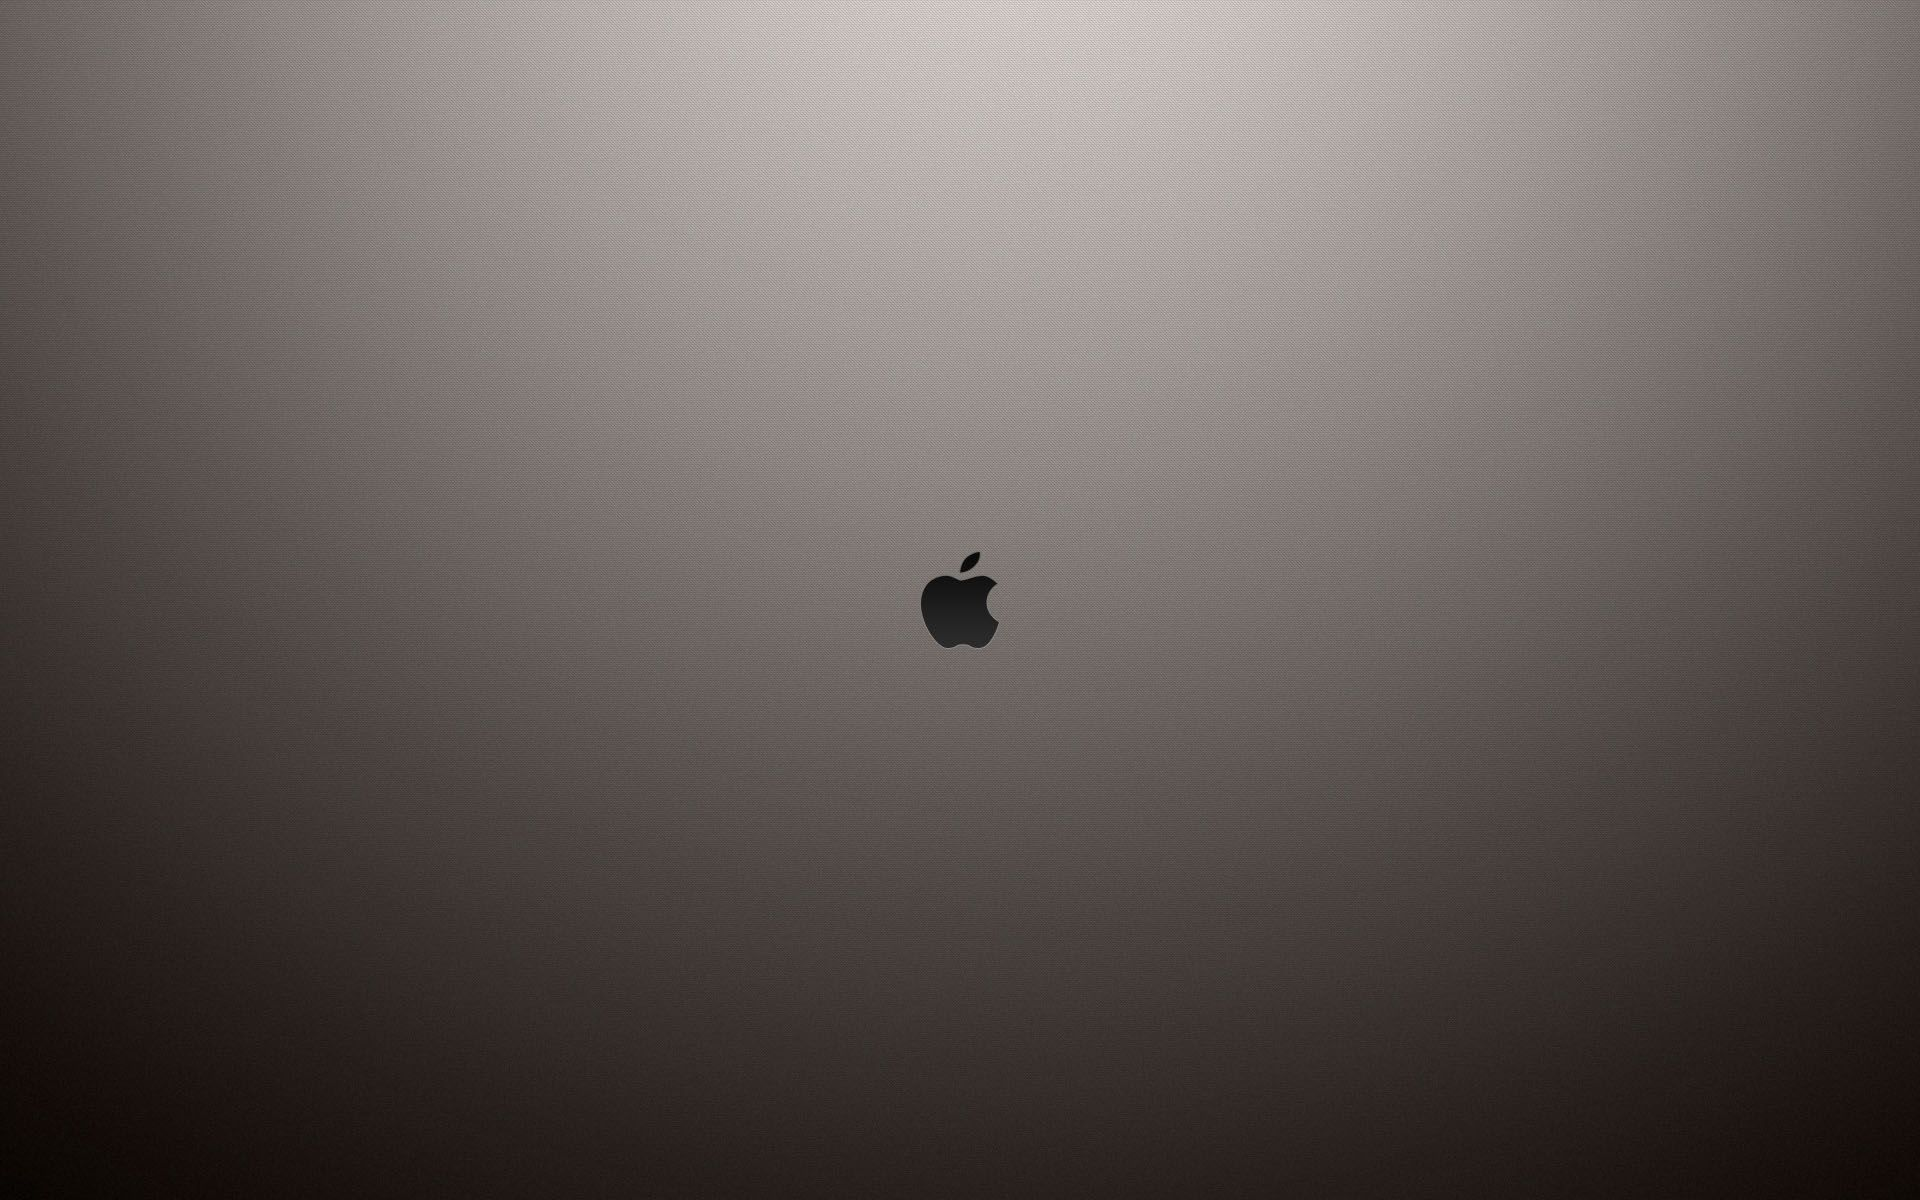 apple hd wallpapers apple logo desktop backgrounds page 1920×1200